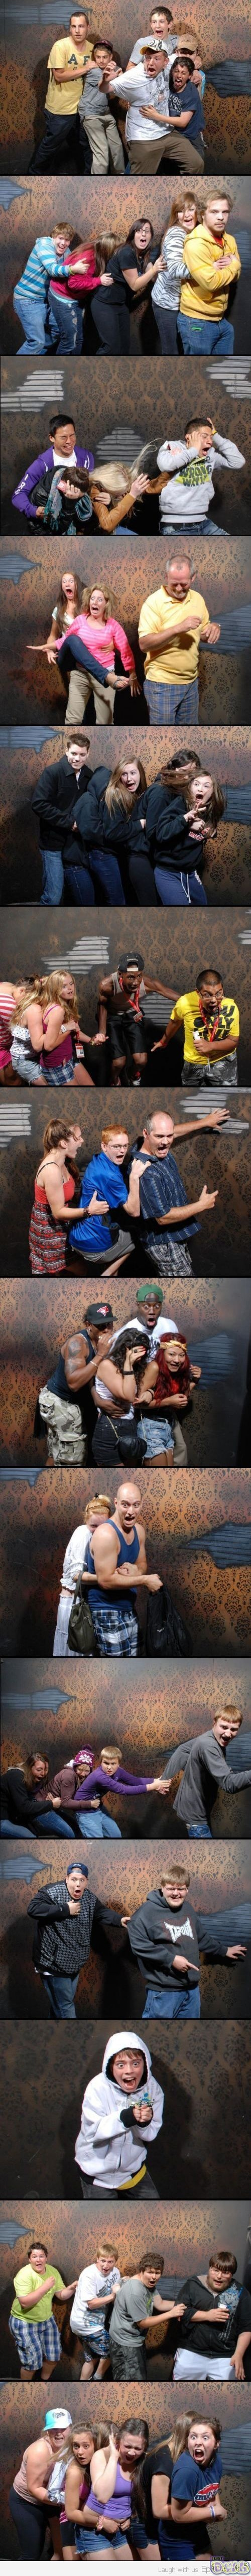 50 hilariously ridiculous haunted house reactions - 71 Best Scared Shytless Images On Pinterest Fear Factory Haunted Houses And Factories